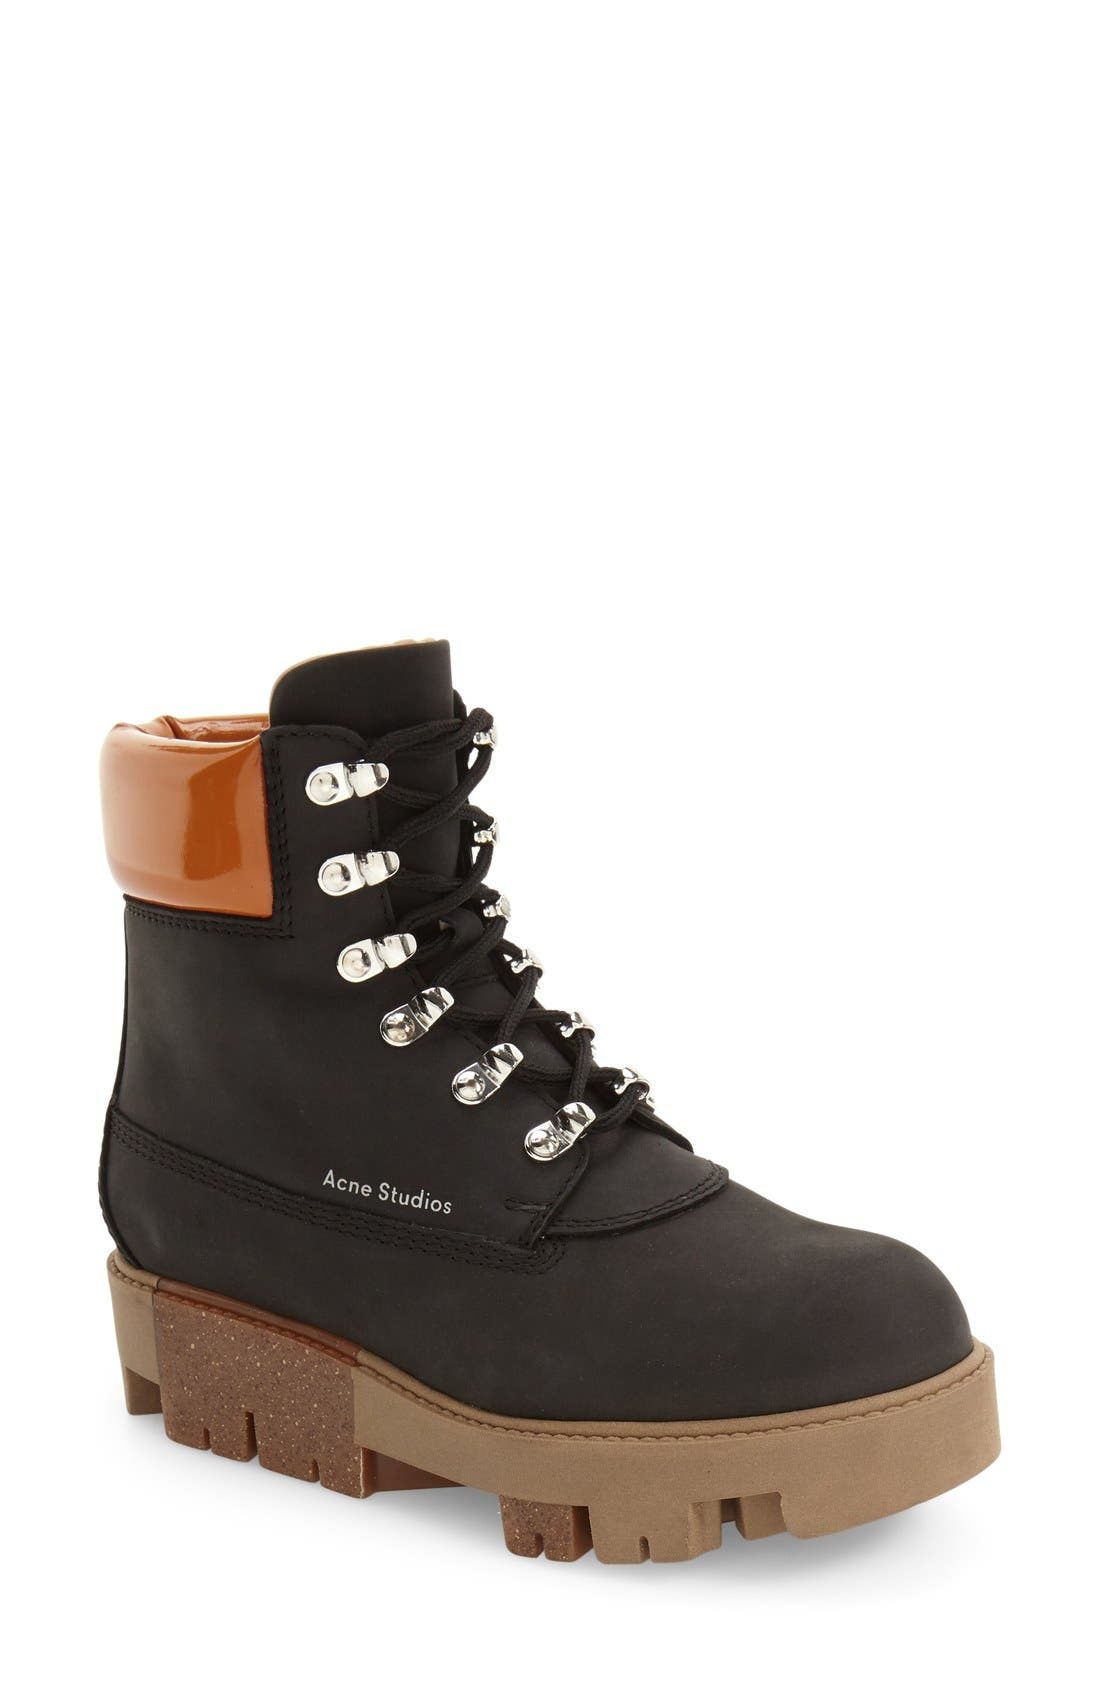 Main Image - ACNE Studios Telda Hiker Boot (Women)